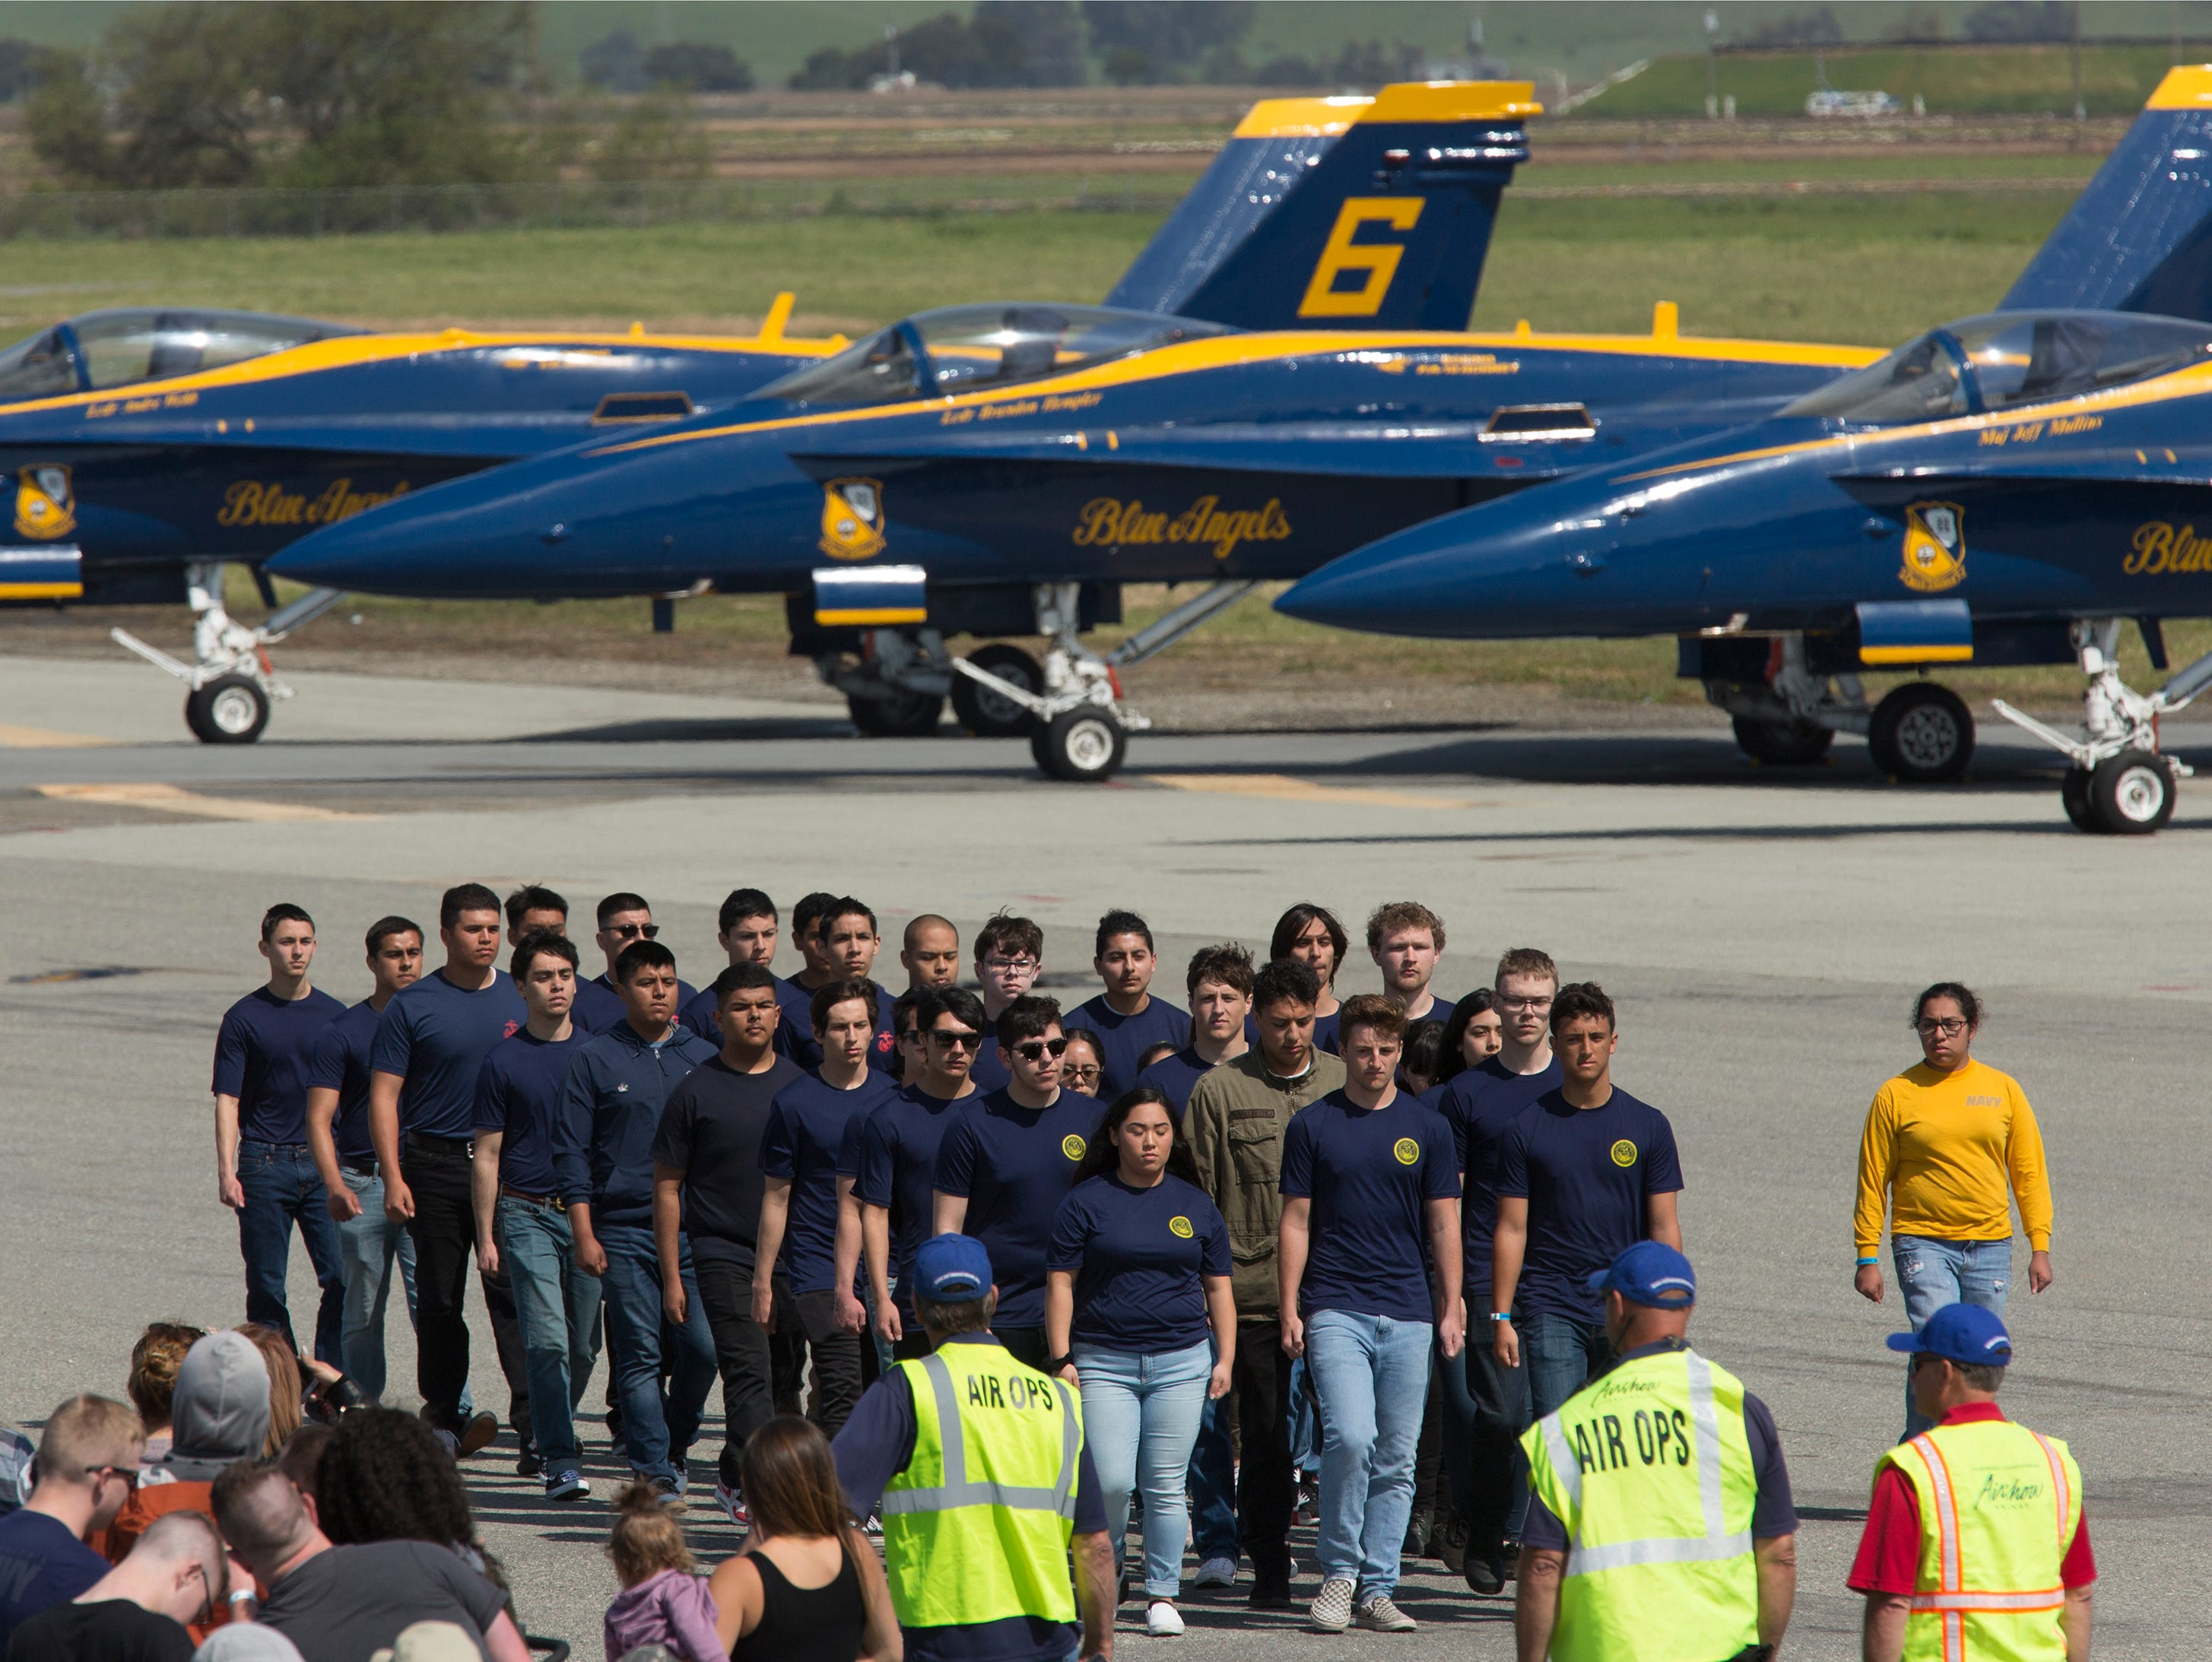 New Navy recruits march past the Blue Angels after taking an oath of enlistment during the California International Airshow Salinas at the Salinas Airport on March 23, 2019. (Photo by David Royal)